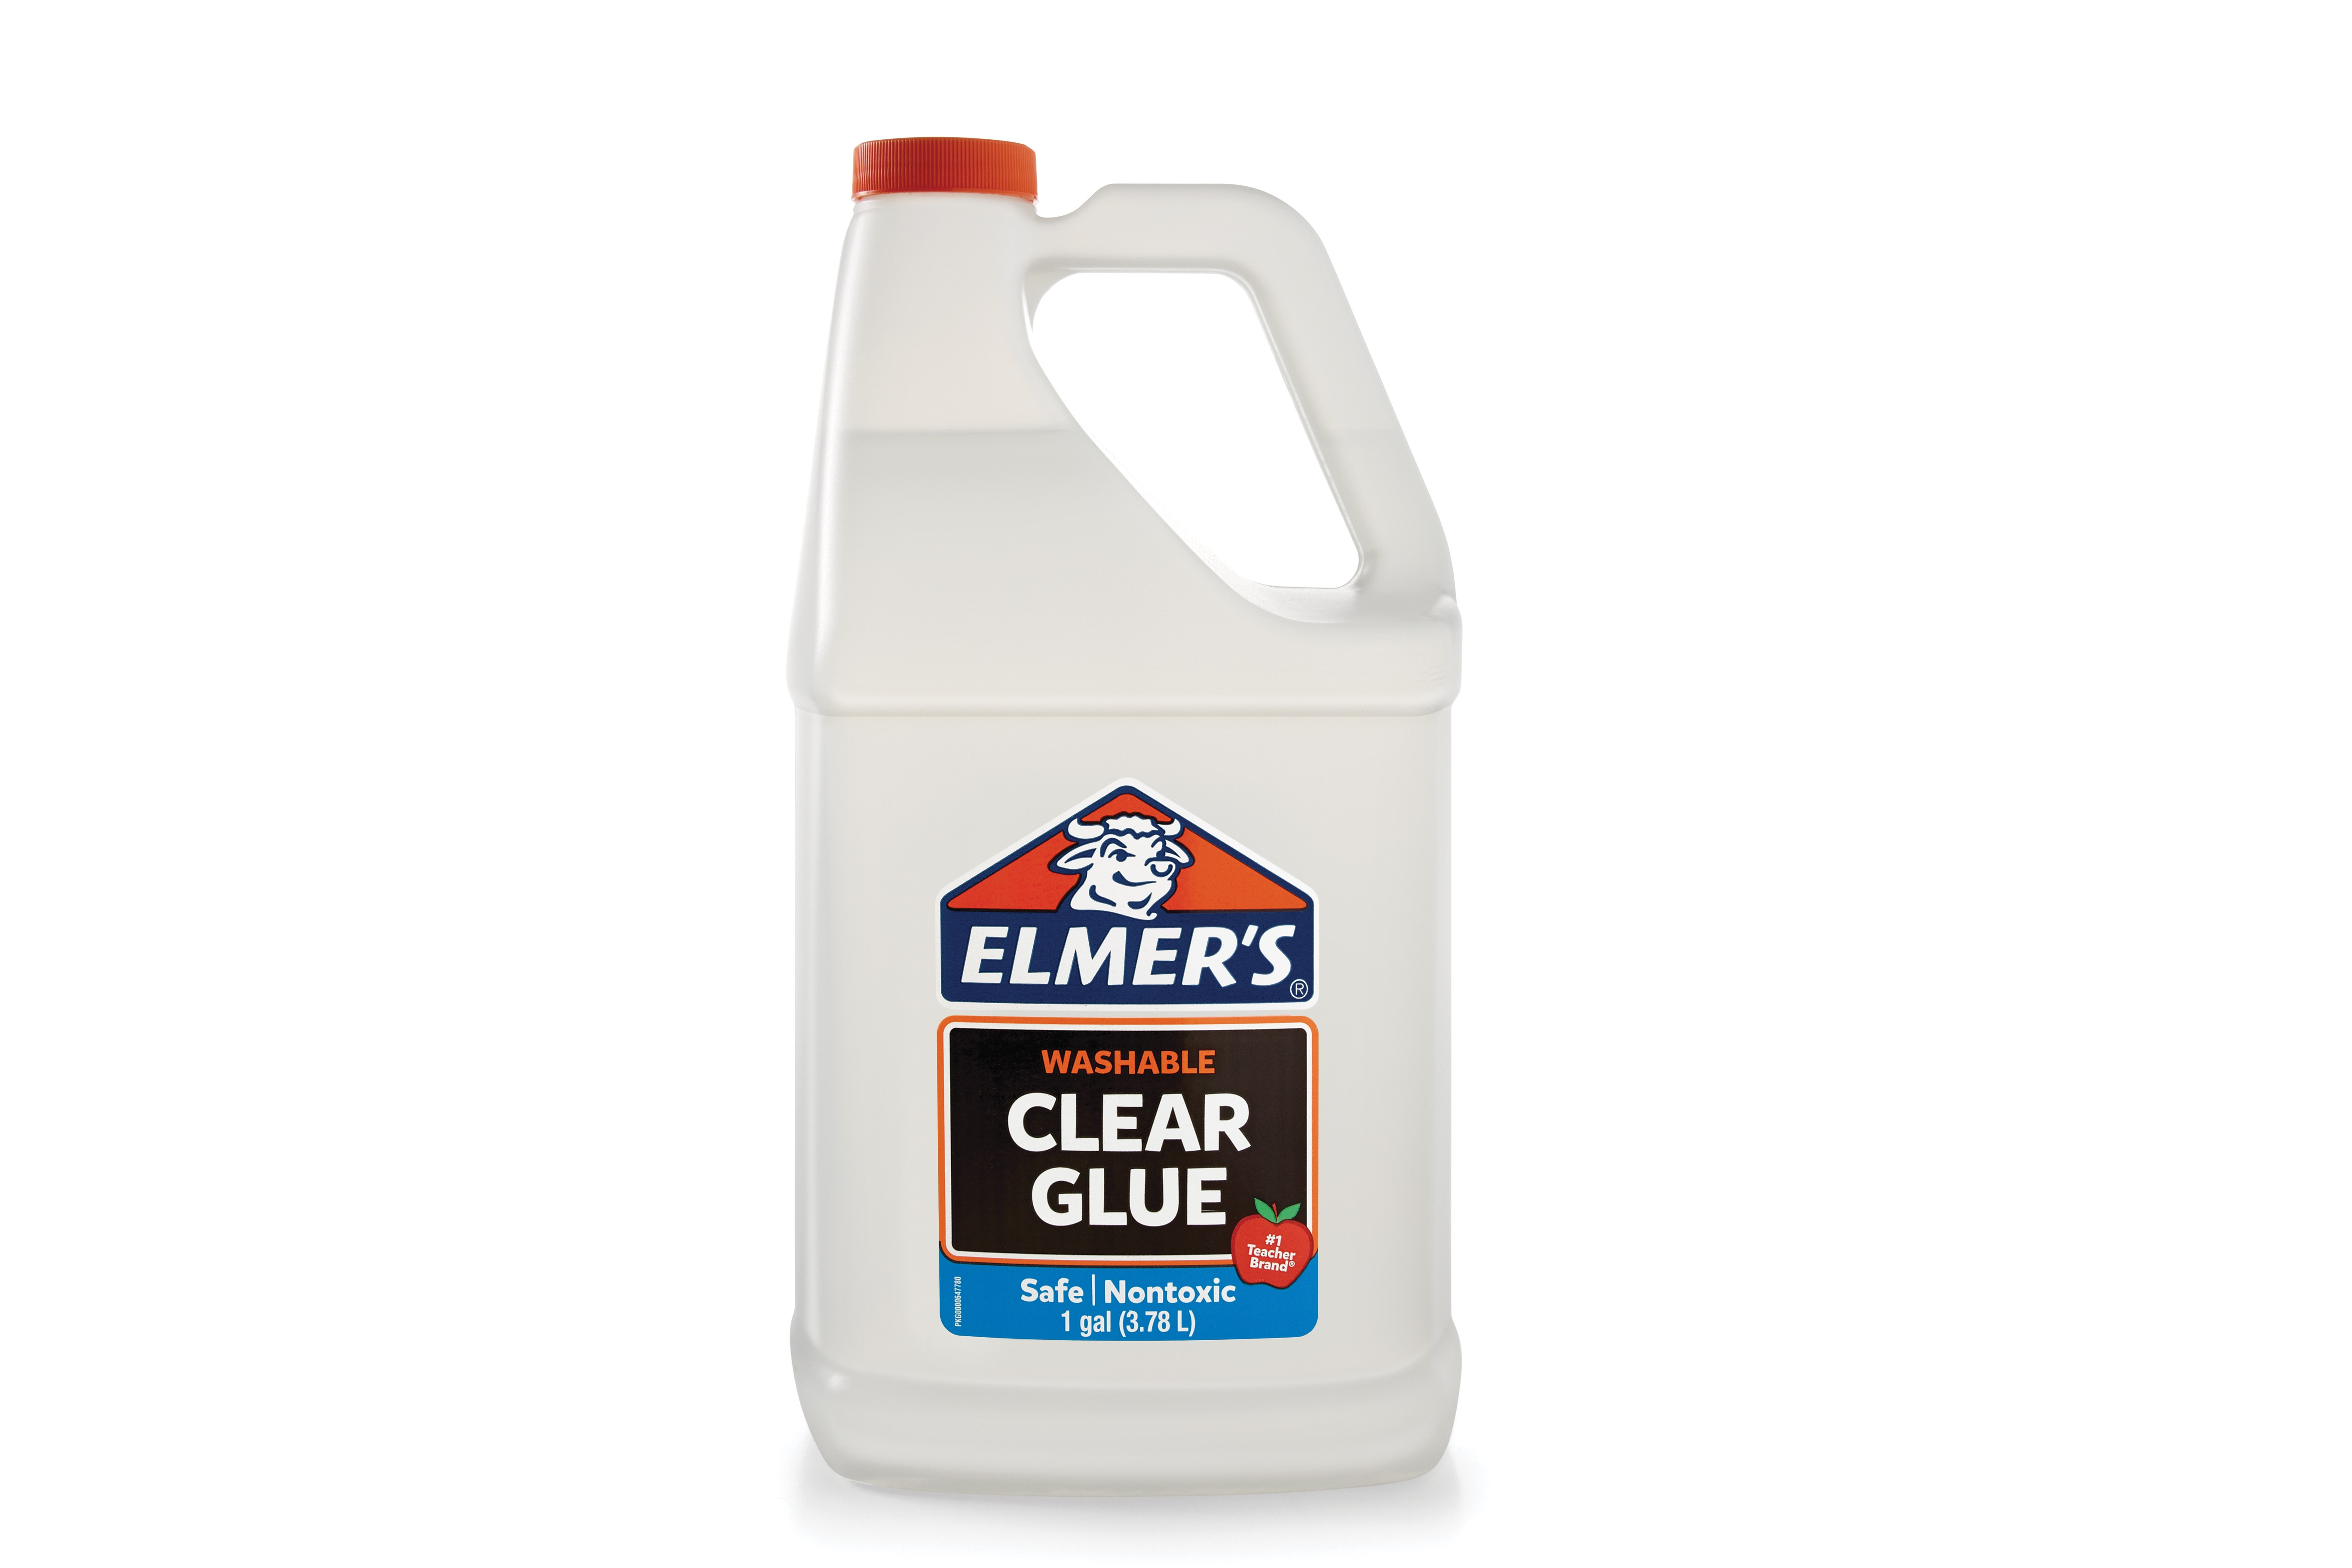 Elmer's Liquid School Glue, Clear, Washable, 1 Gallon Great for Making Slime! by Elmers/X-Acto